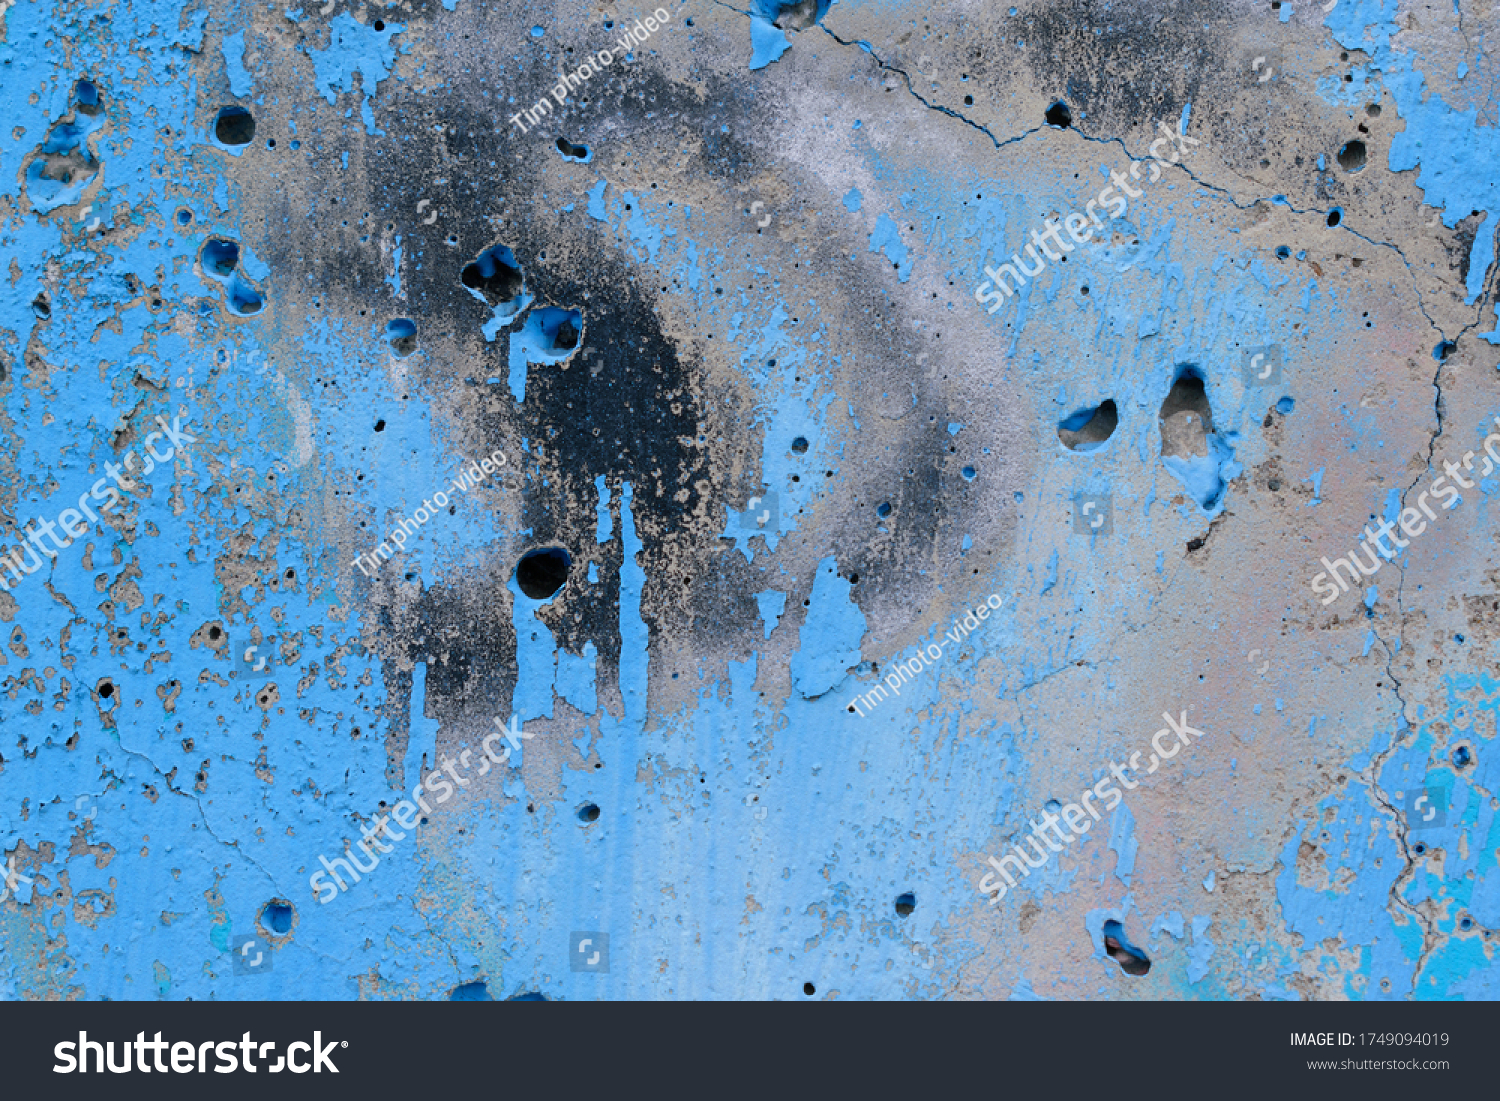 Gray concrete wall for backdrop. Old paint, color Malibu, Hue Blue. Black abstract spots, indentations and pits.